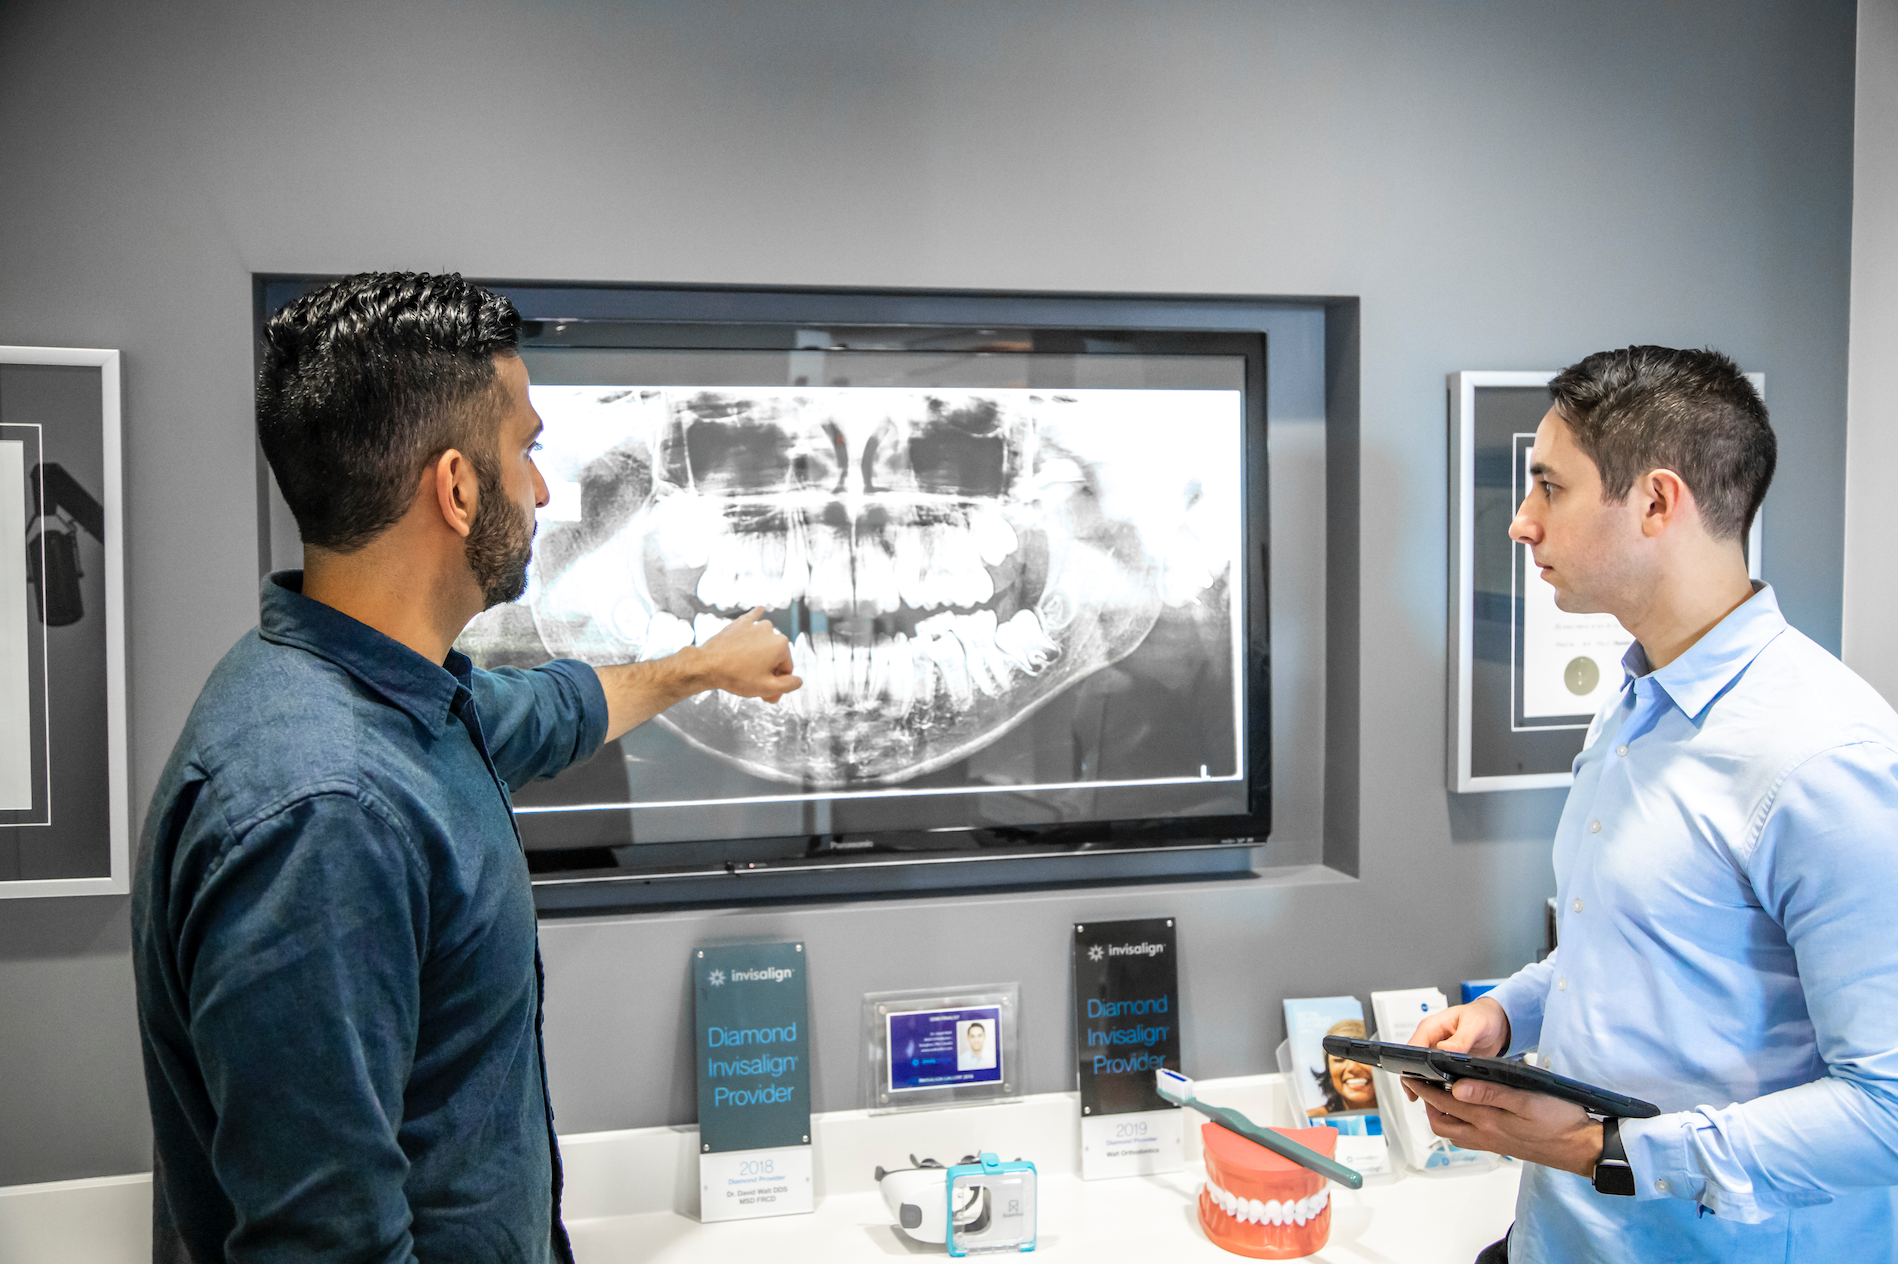 The Difference an Invisalign Diamond Provider Provides